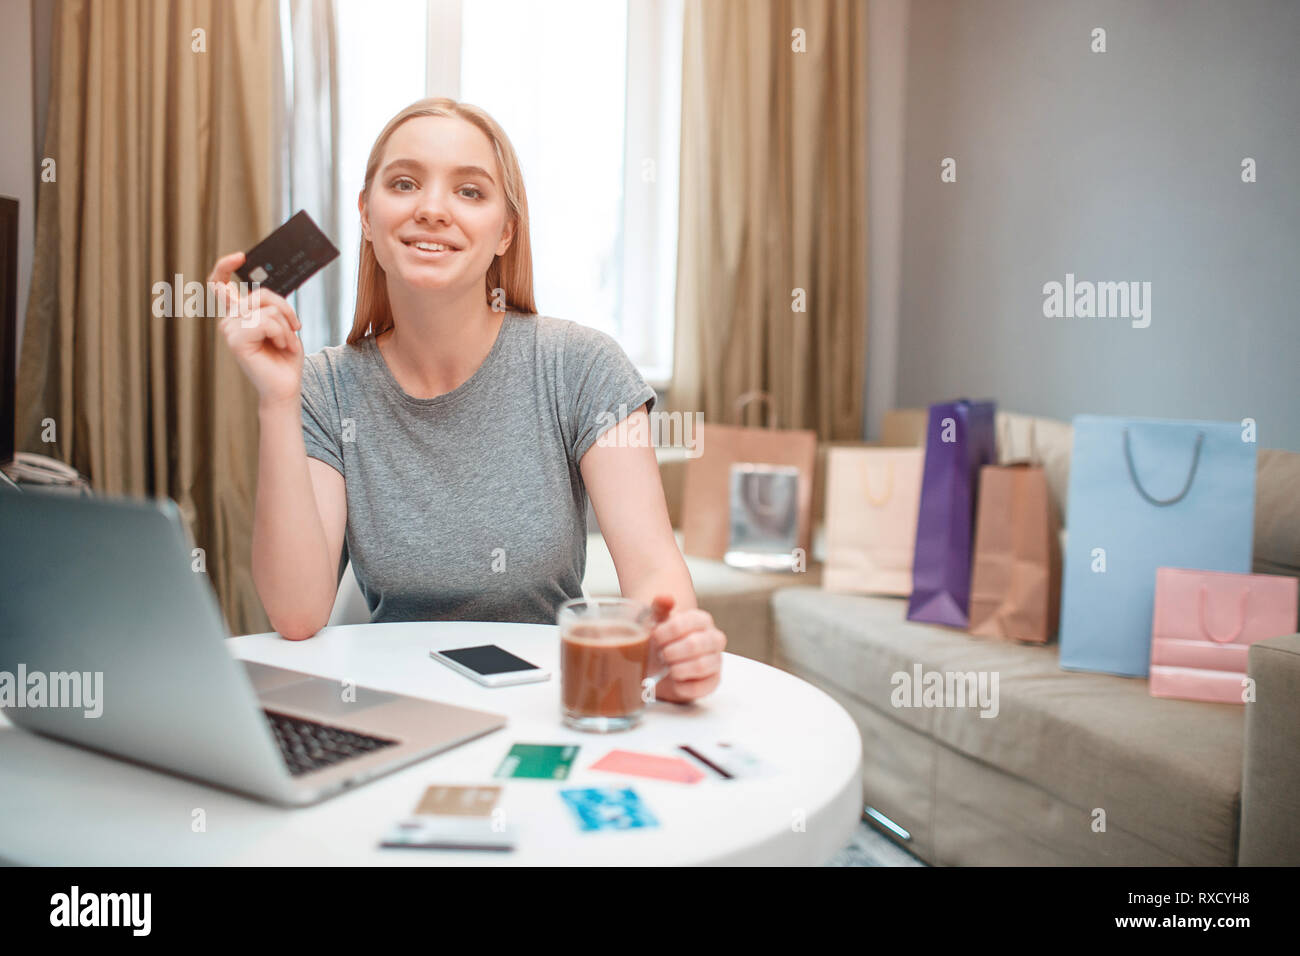 Online shopping at home. Young happy woman is ready to spend money from payment card on black Friday while sitting at the table - Stock Image